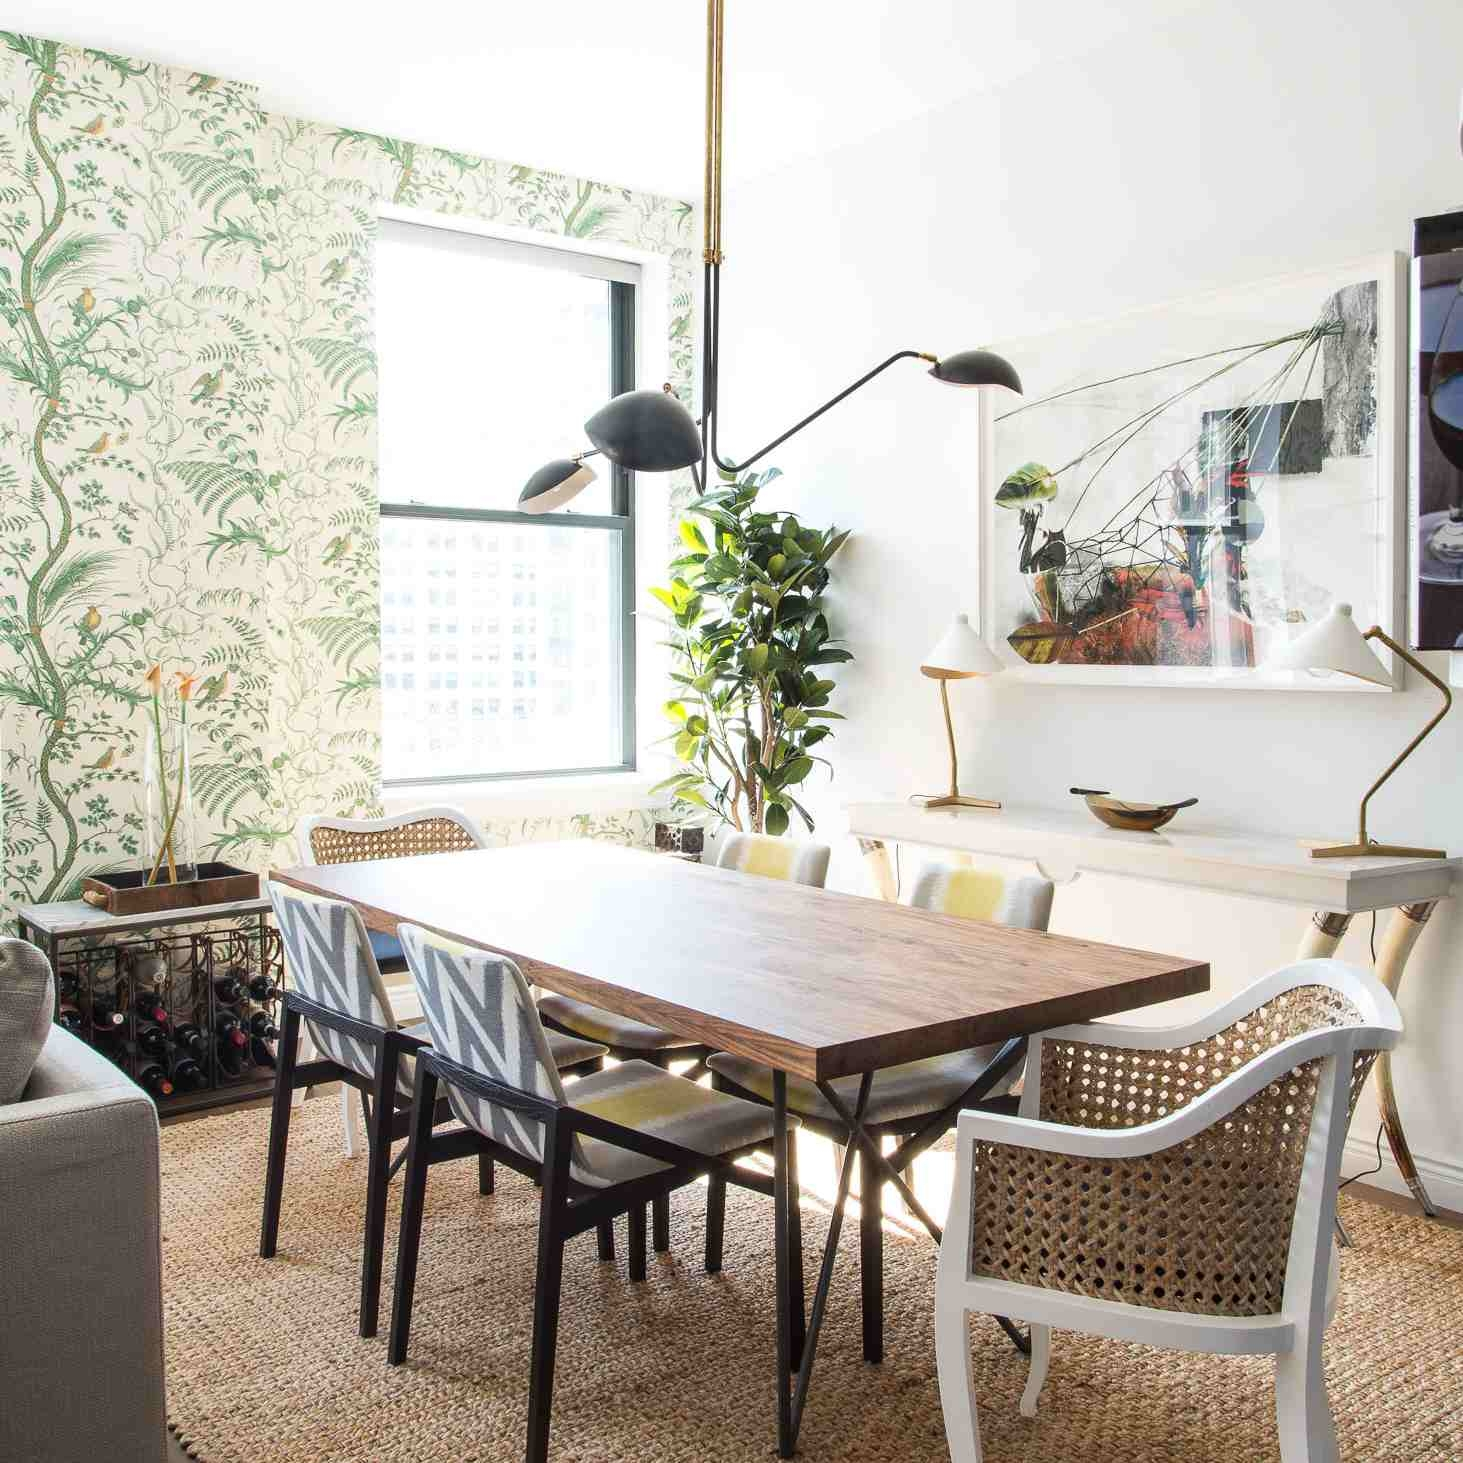 5 Things a Designer Would Never Do in a Small Dining Room